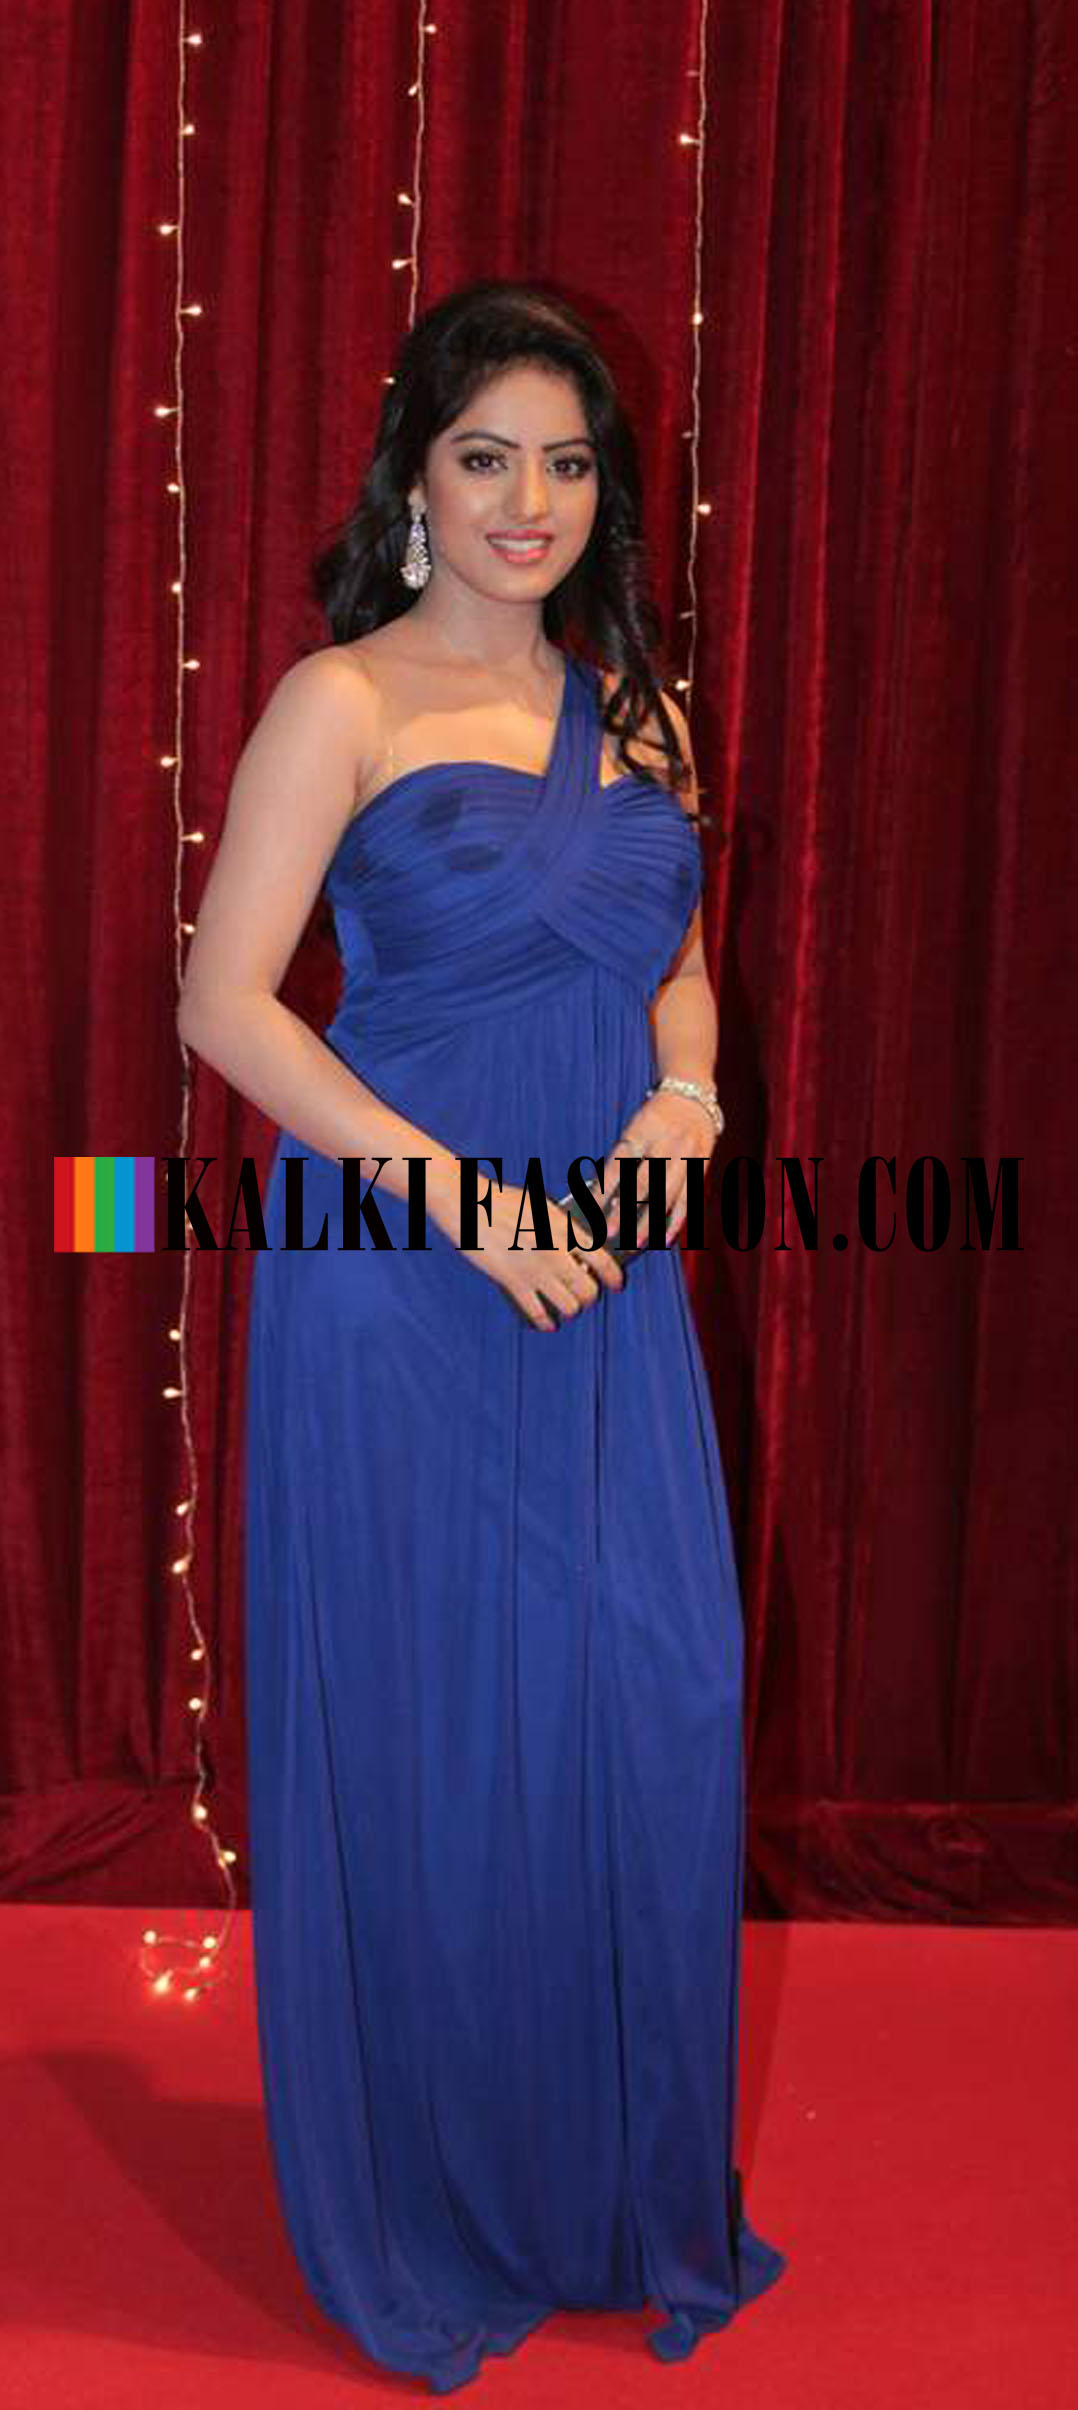 http-www-kalkifashion-com-Blue-being-the-flavour-of-the-night-Deepika-Singh-stepted-in-a-blue-wallpaper-wp5207691